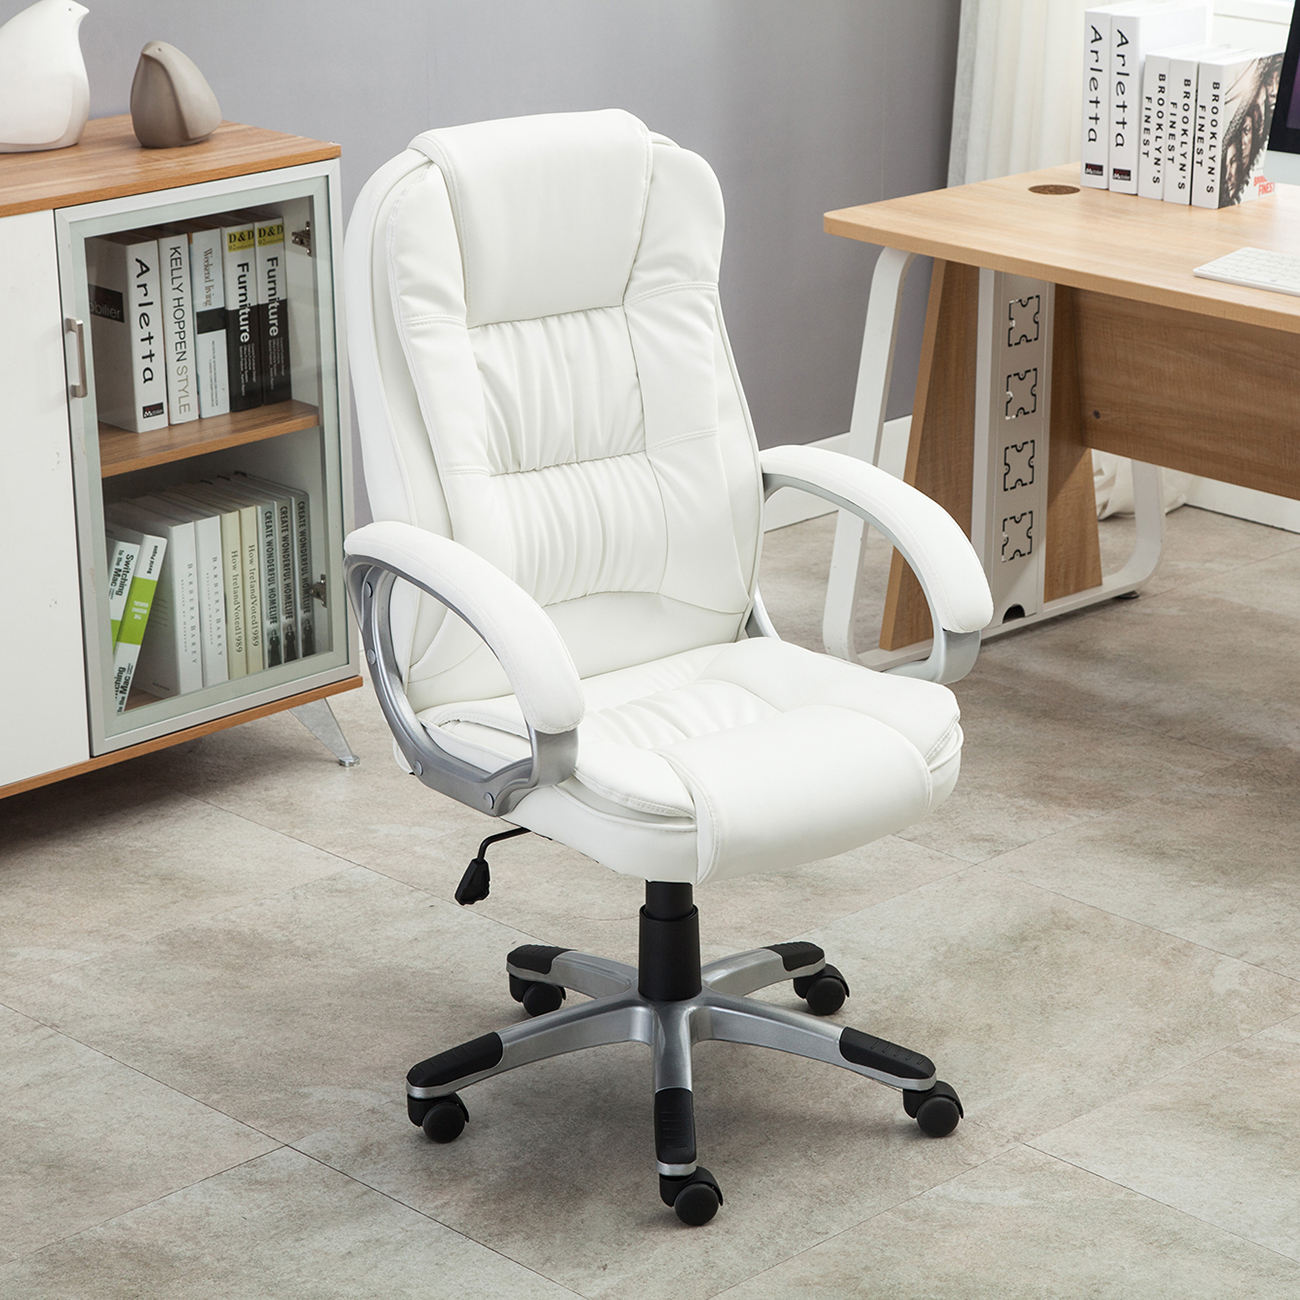 white leather desk chair white pu leather high back office chair executive 21991 | 048 gm 48098 6